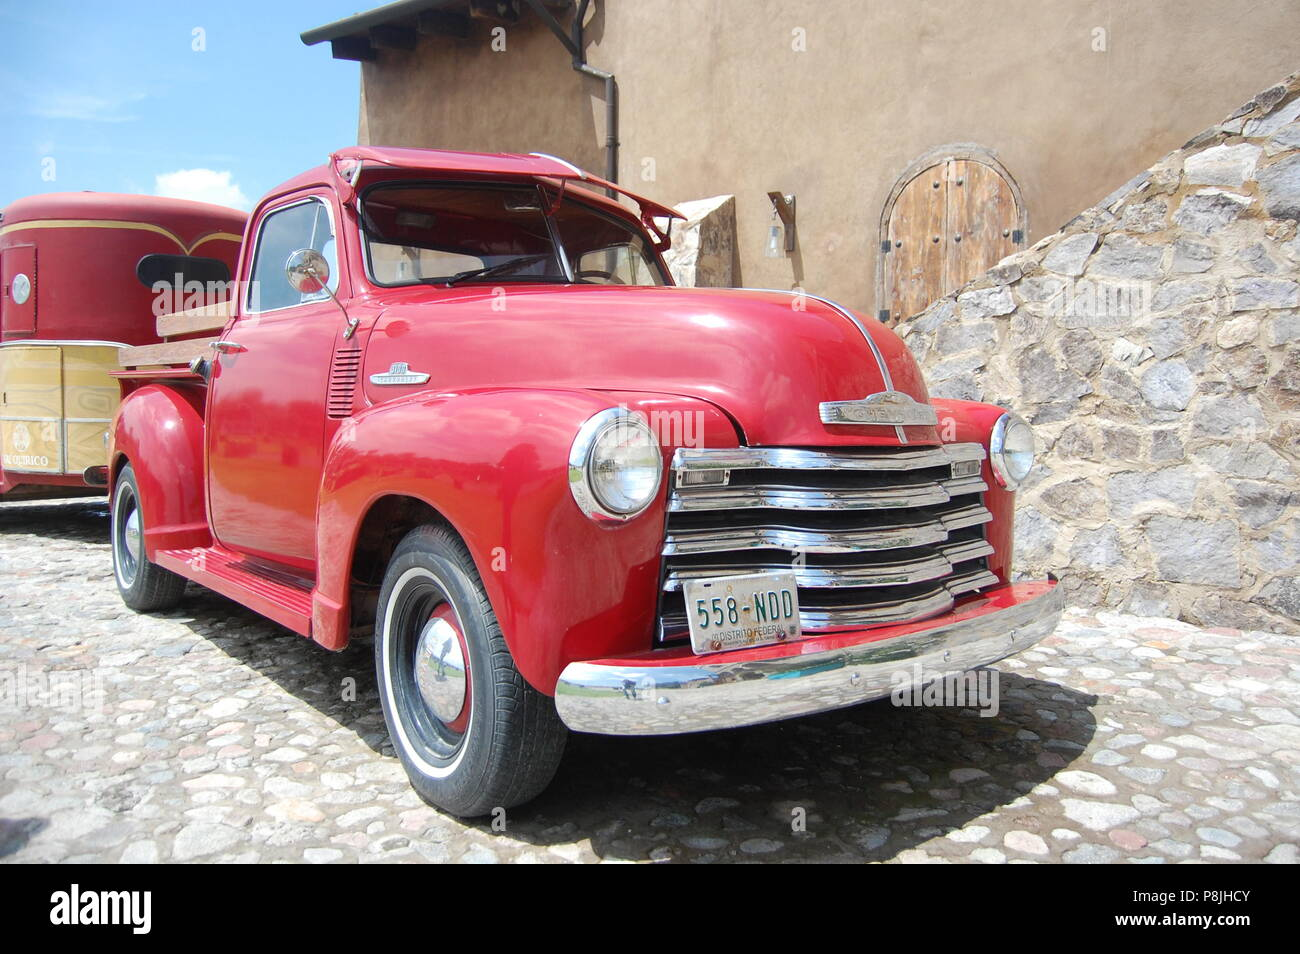 Old fancy shiny red truck - Stock Image